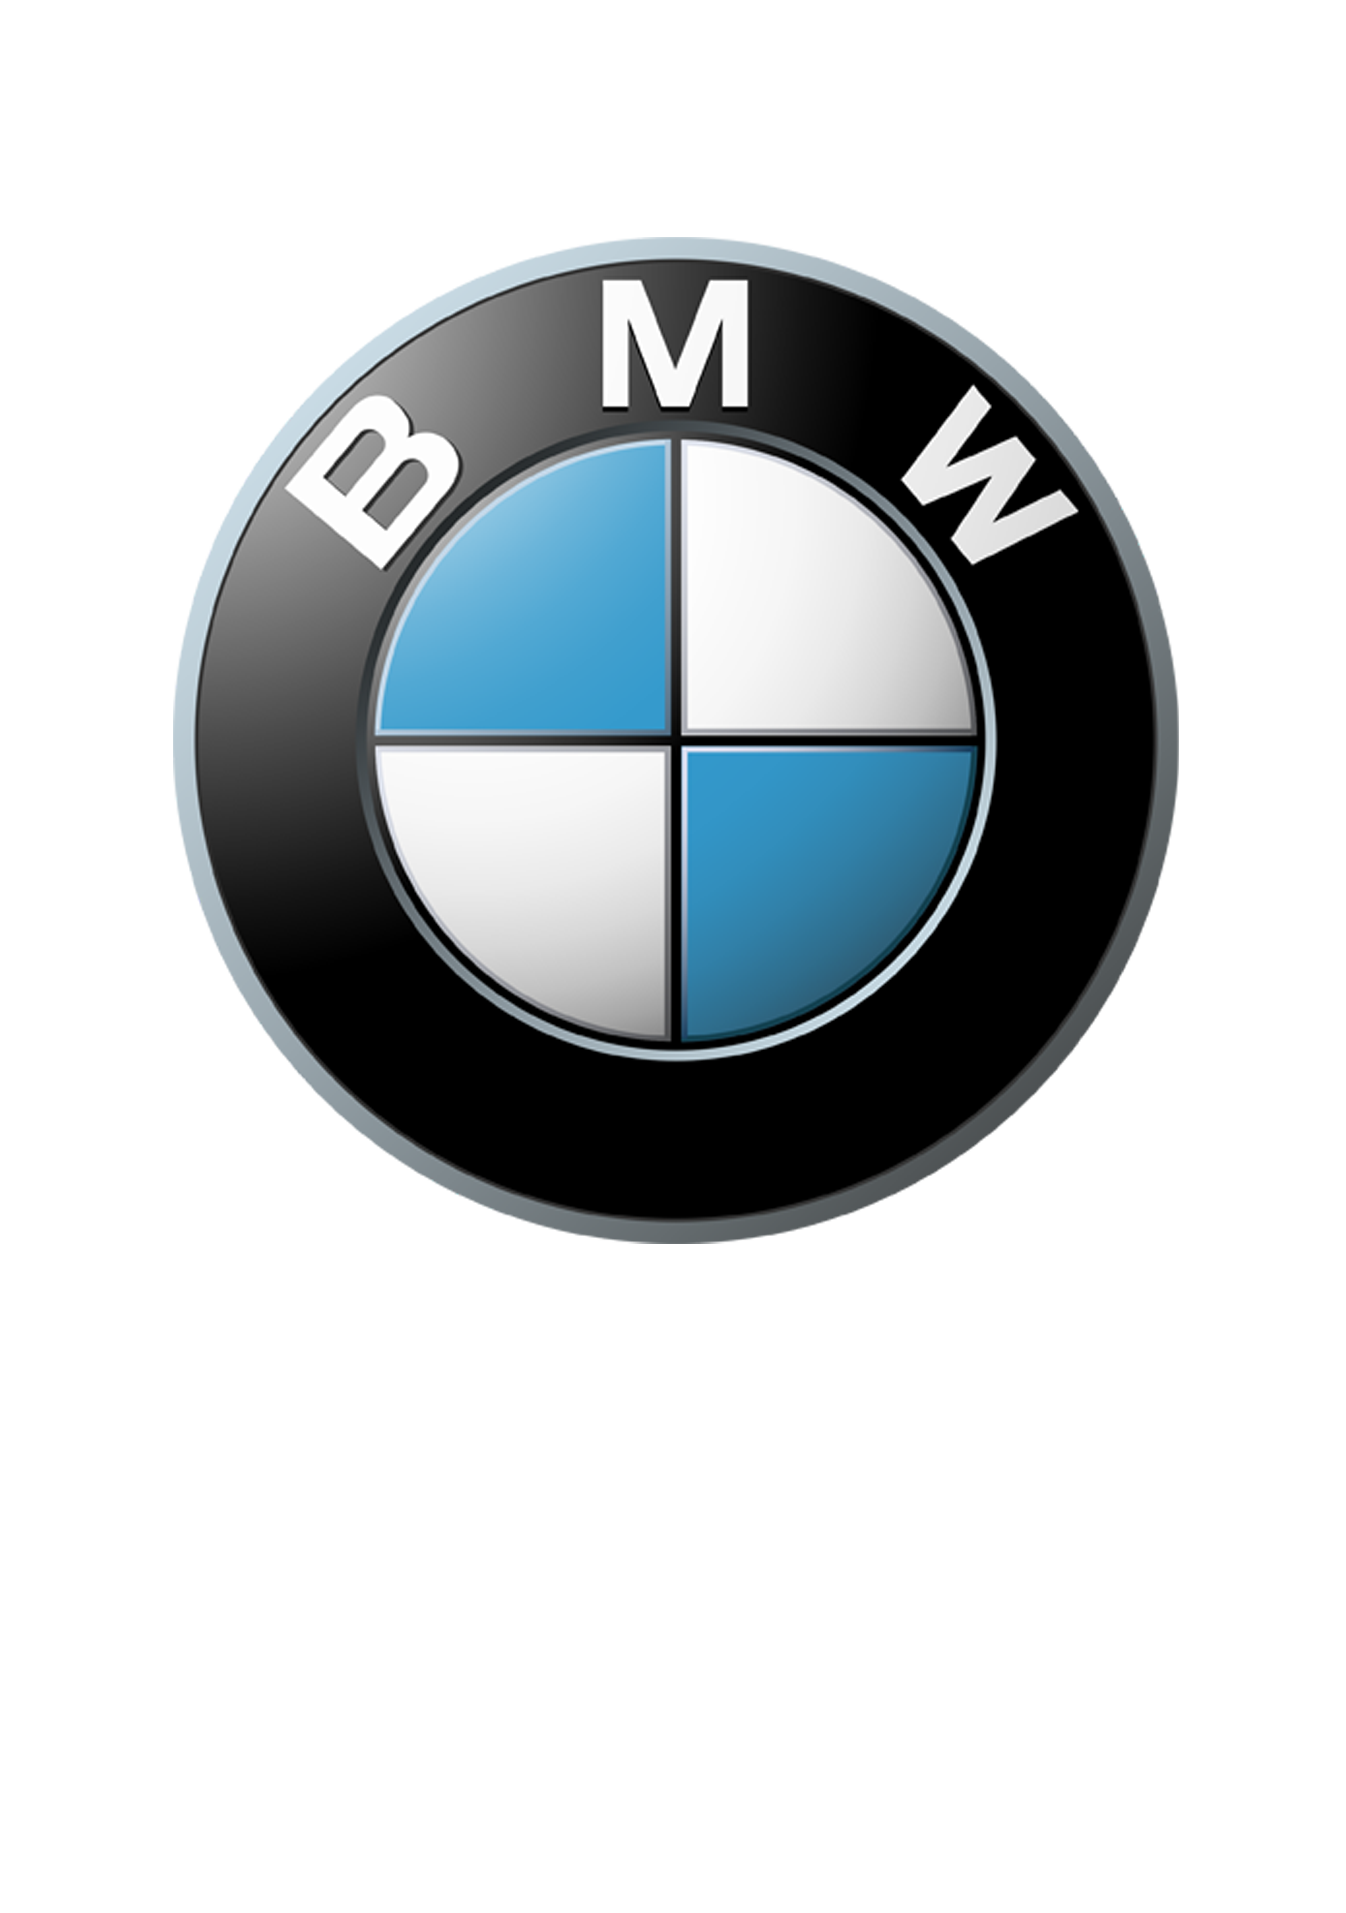 motomil site branco.PNG